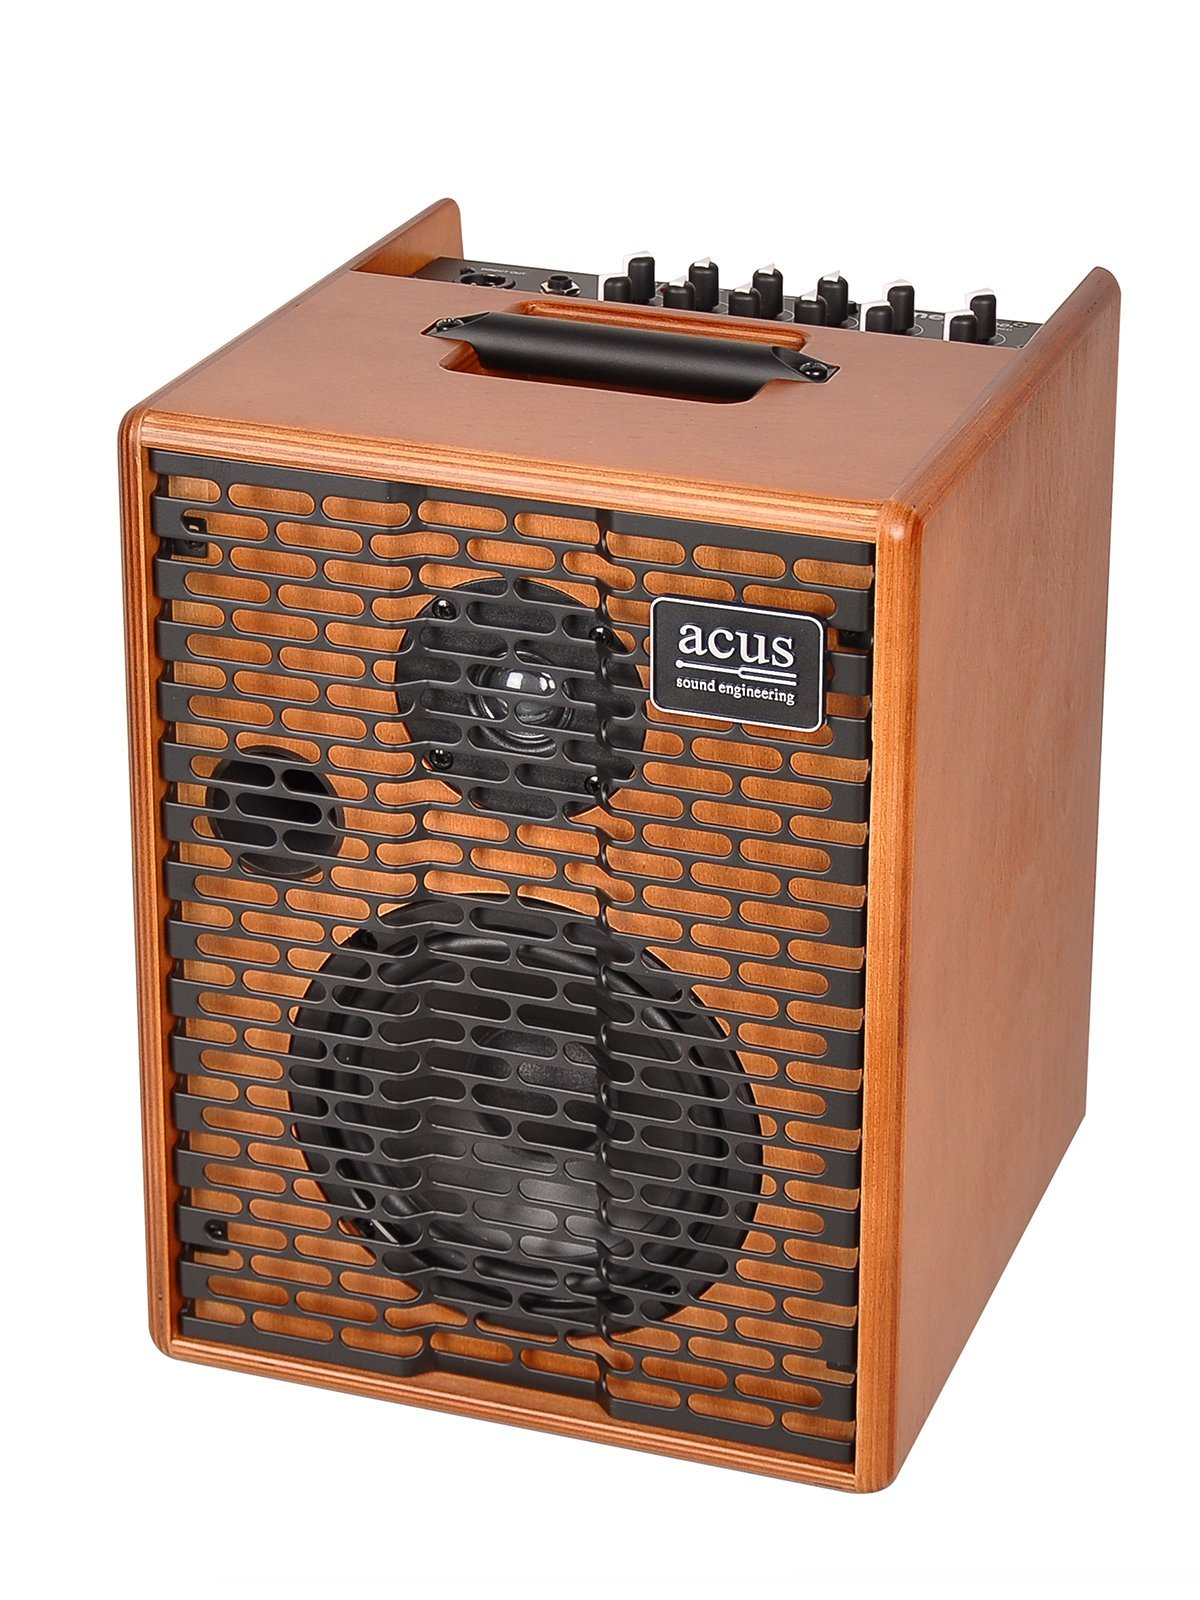 Acus Sound Engineering 03000611 OneforStreet Battery Powered Acoustic Guitar Amplifier - Wood